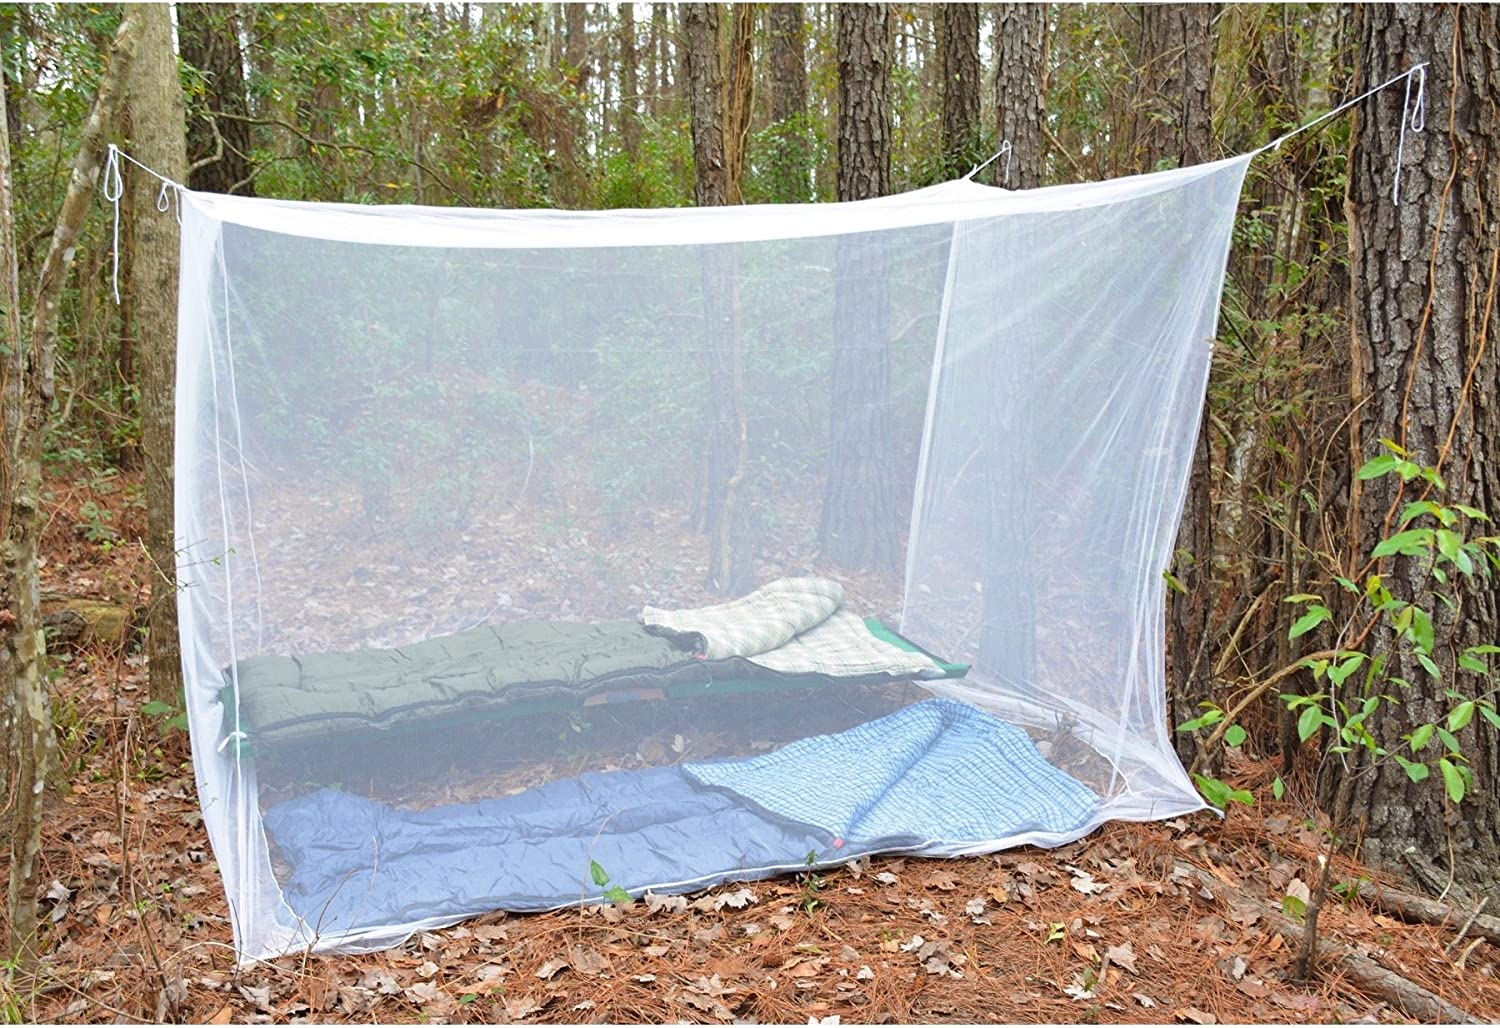 Outdoor Camping Moskitonetz Zelt Bett Backpacking Textile Mesh Anti Insect